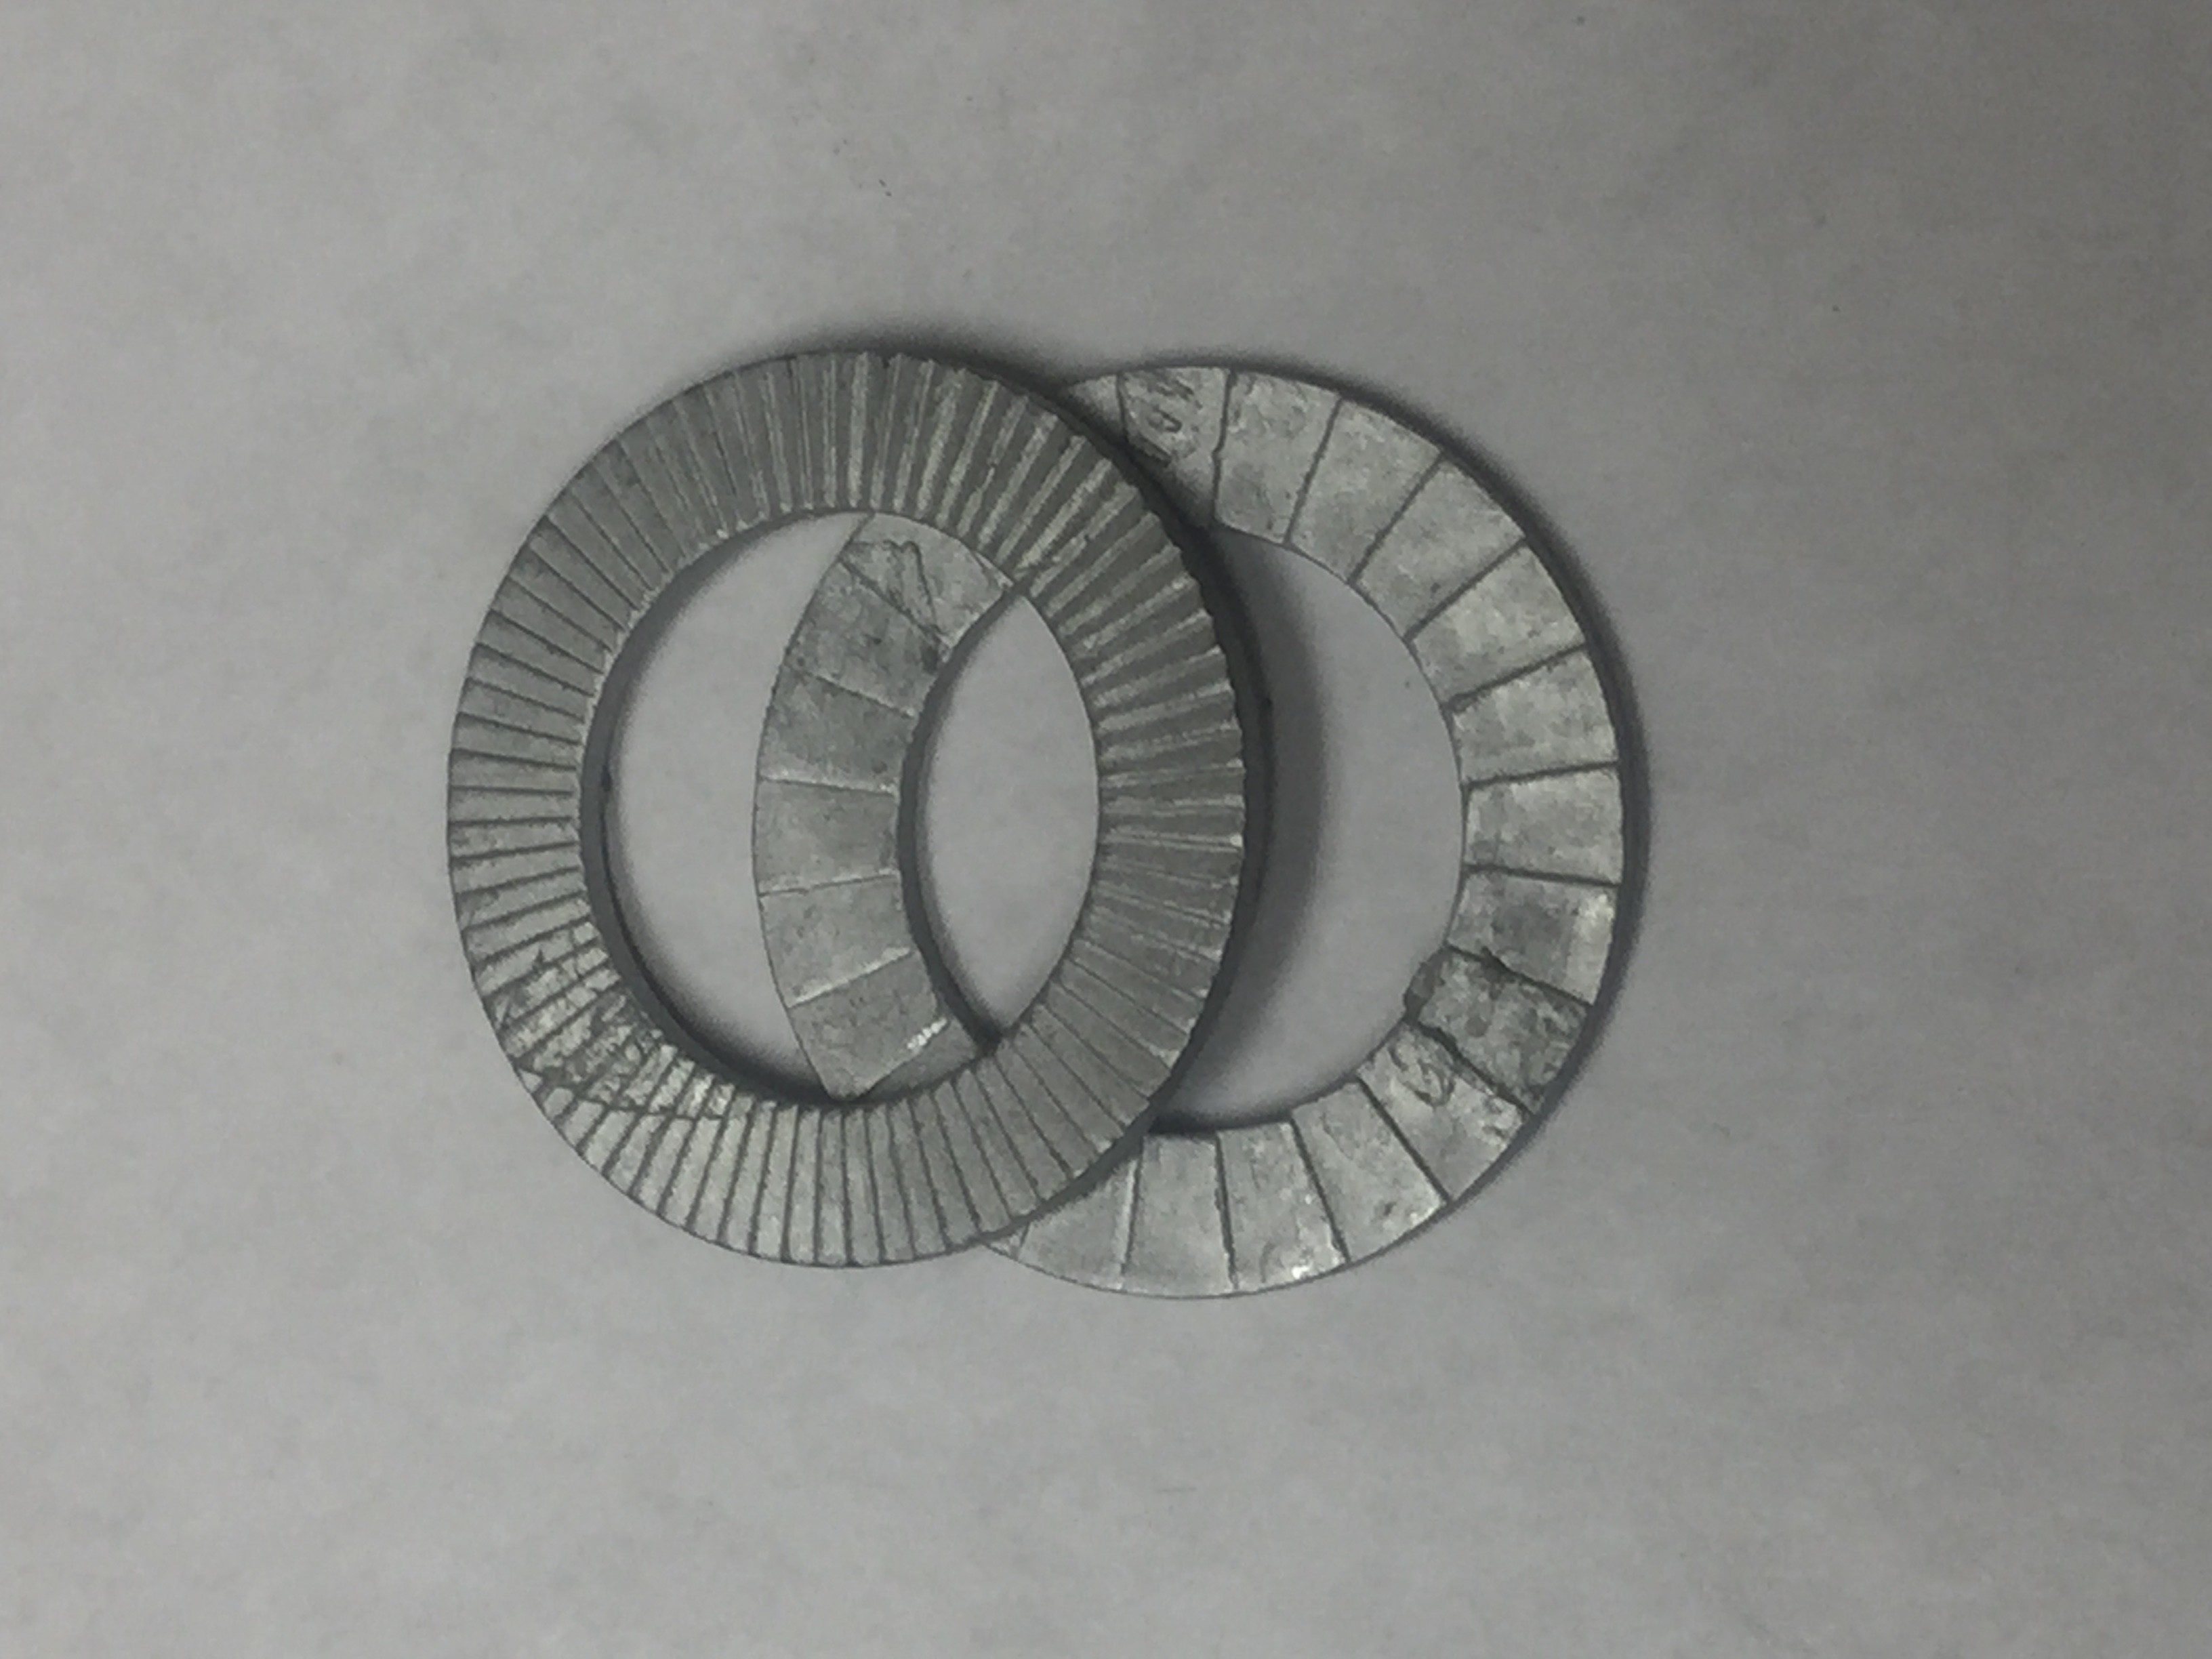 1/4 ZINC PLATED NORD-LOCK WASHER